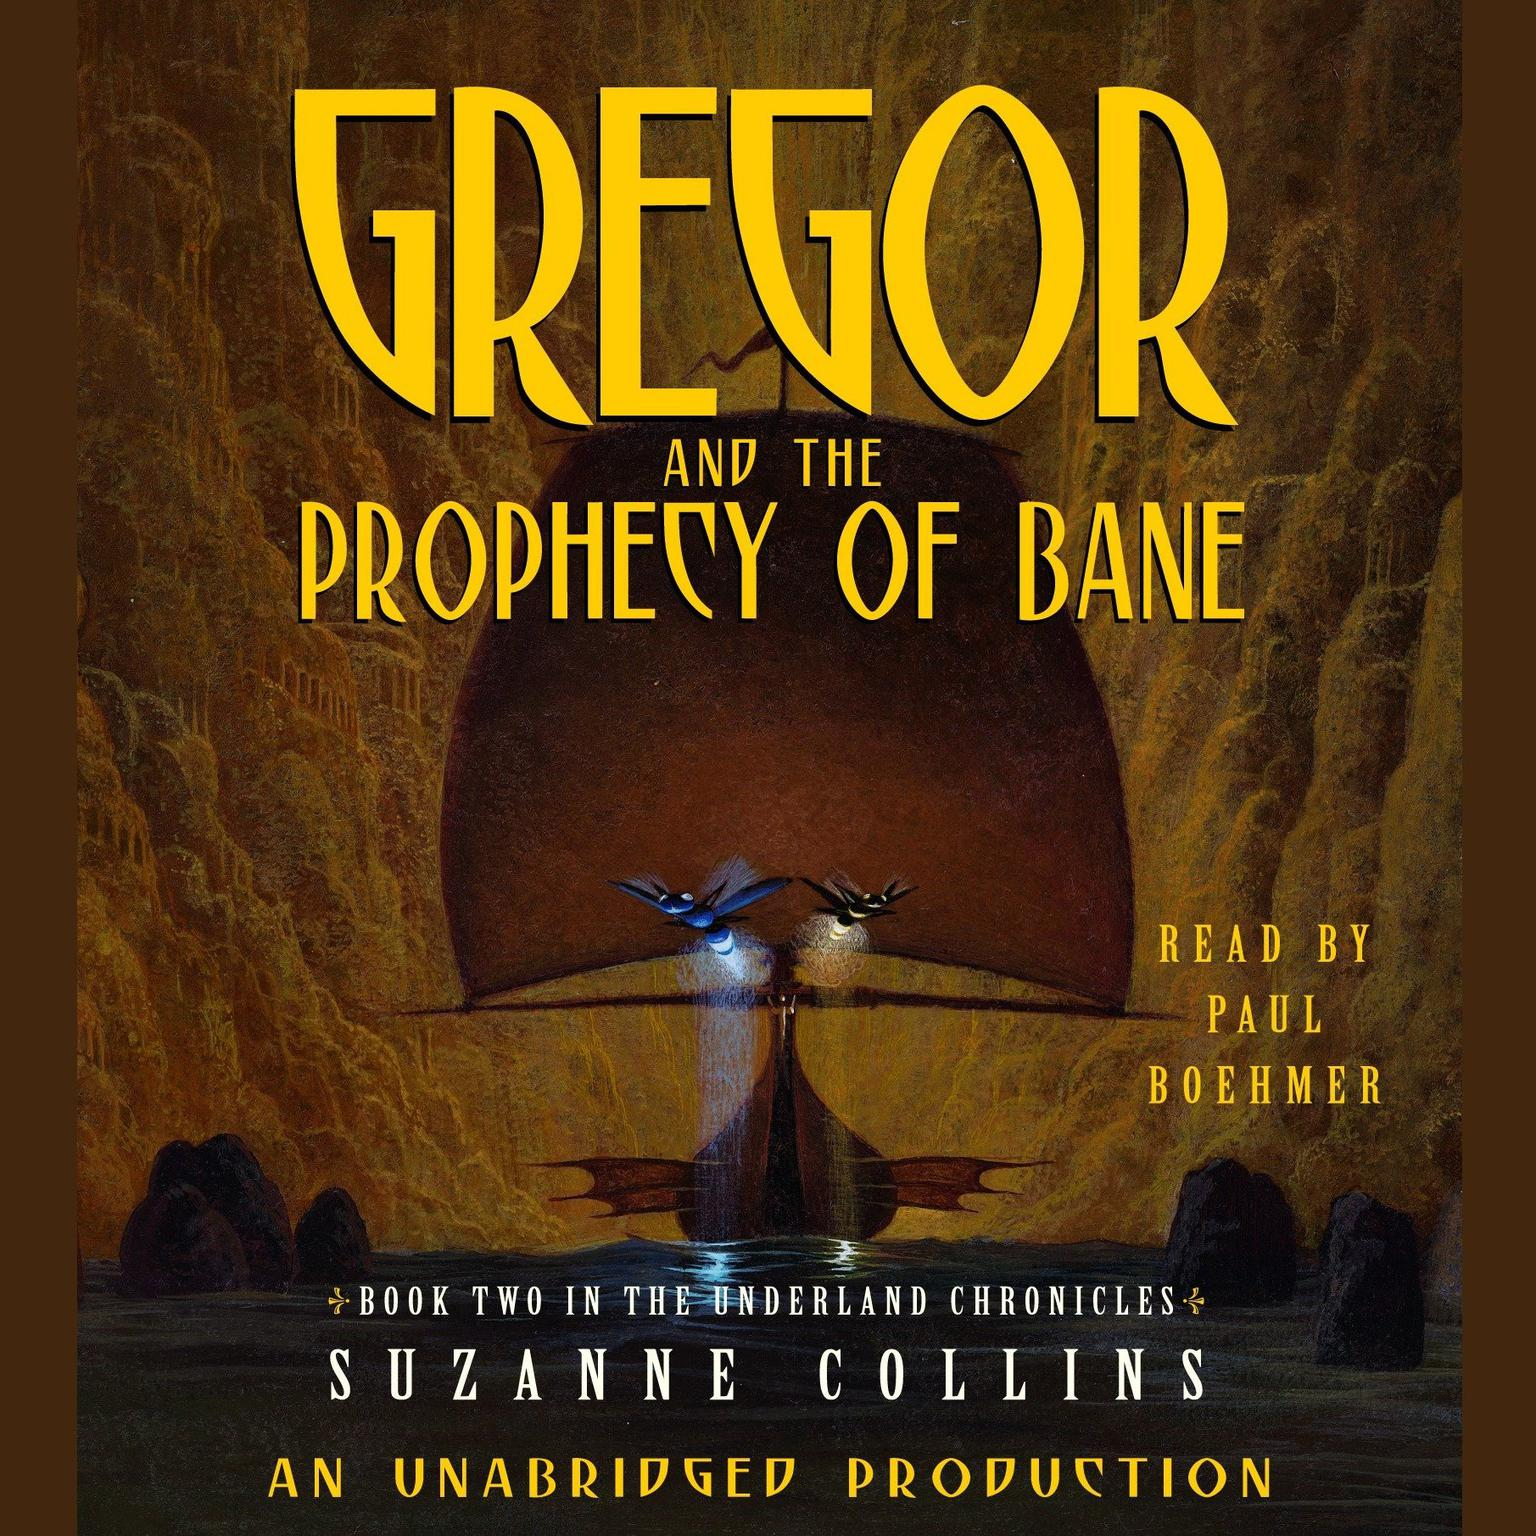 Printable The Underland Chronicles Book Two: Gregor and the Prophecy of Bane Audiobook Cover Art